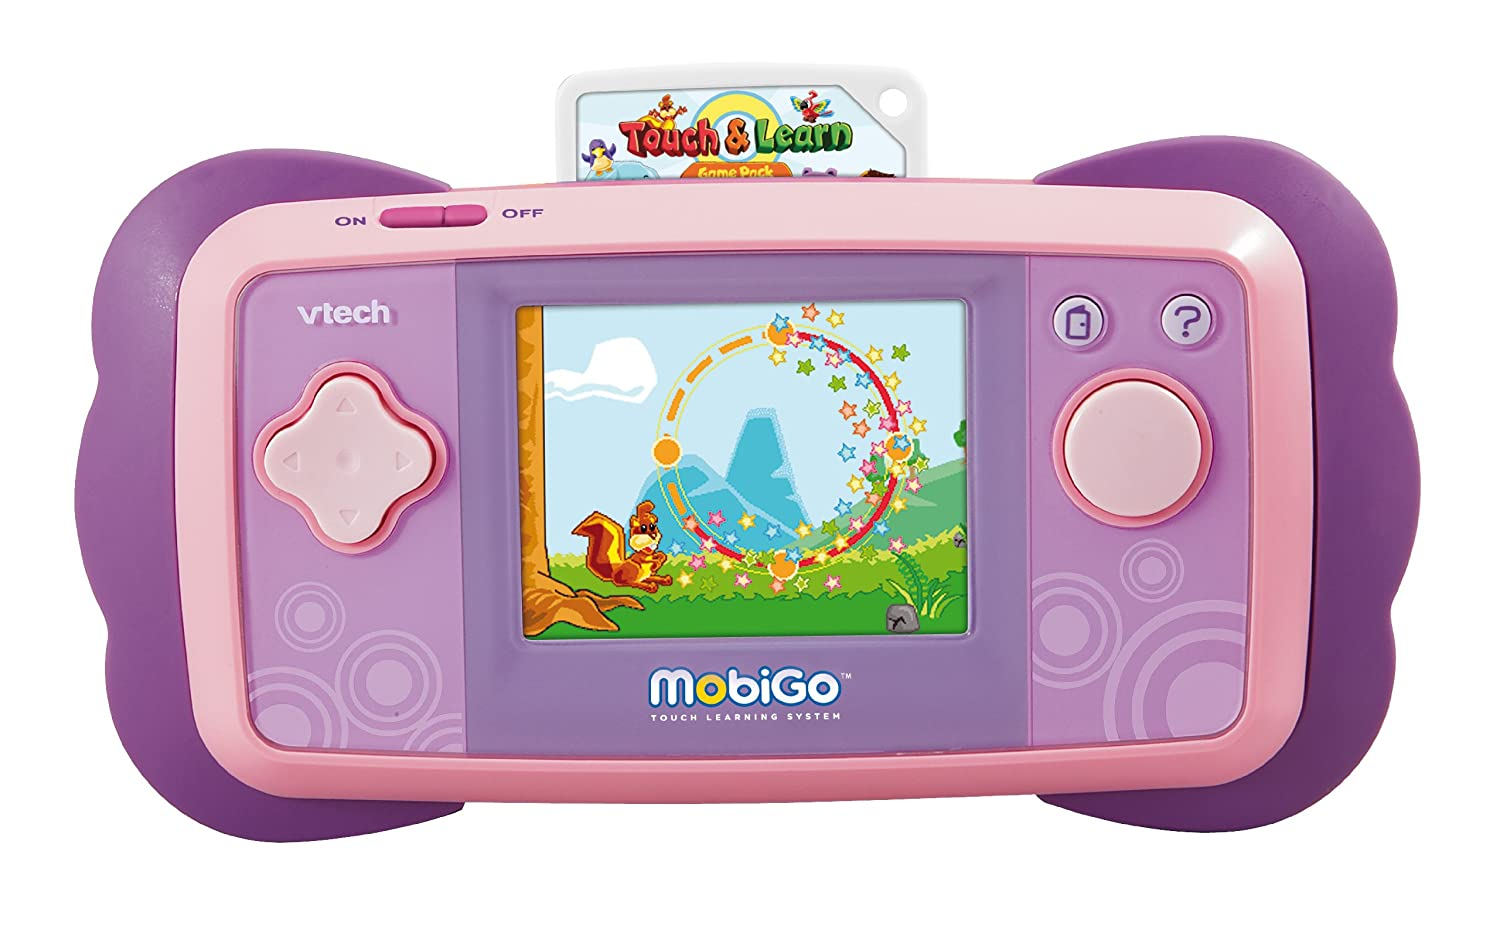 60d2169d6f Amazon.com  VTech - MobiGo Touch Learning System - Pink  Toys   Games